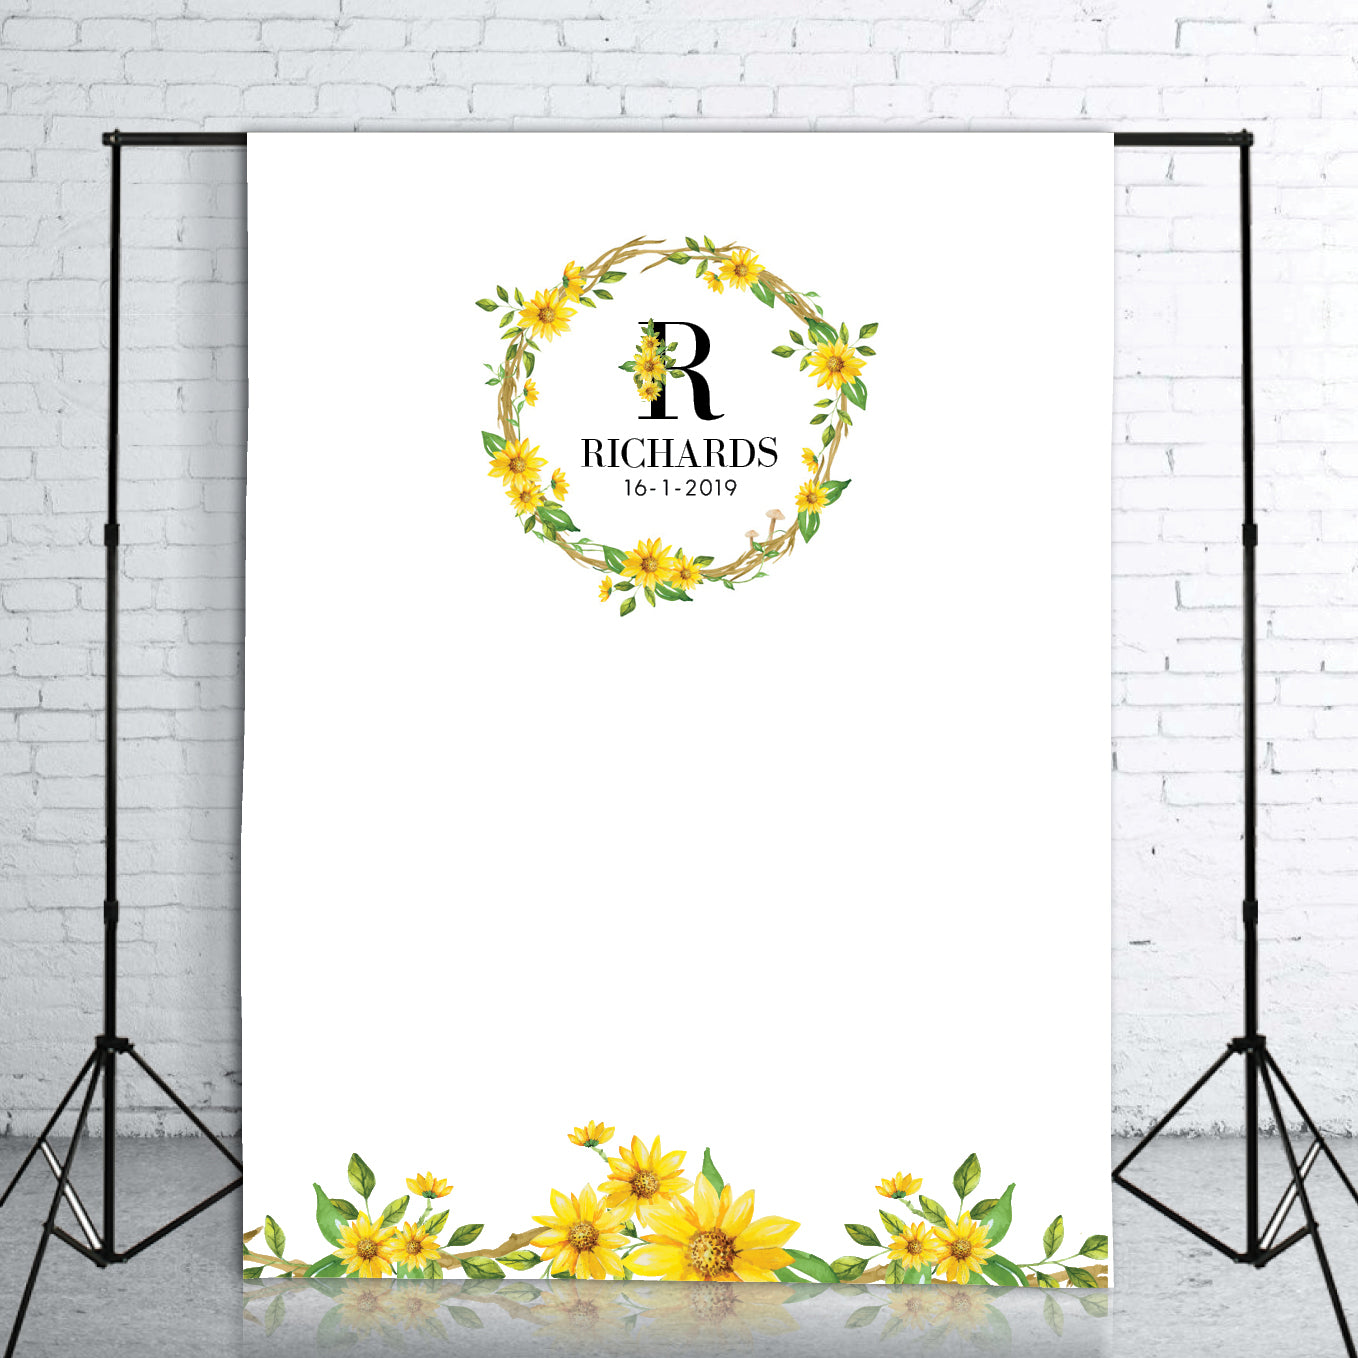 Sunflower Wreath Monogram Wedding Backdrop 1 5 X 2m Framesta